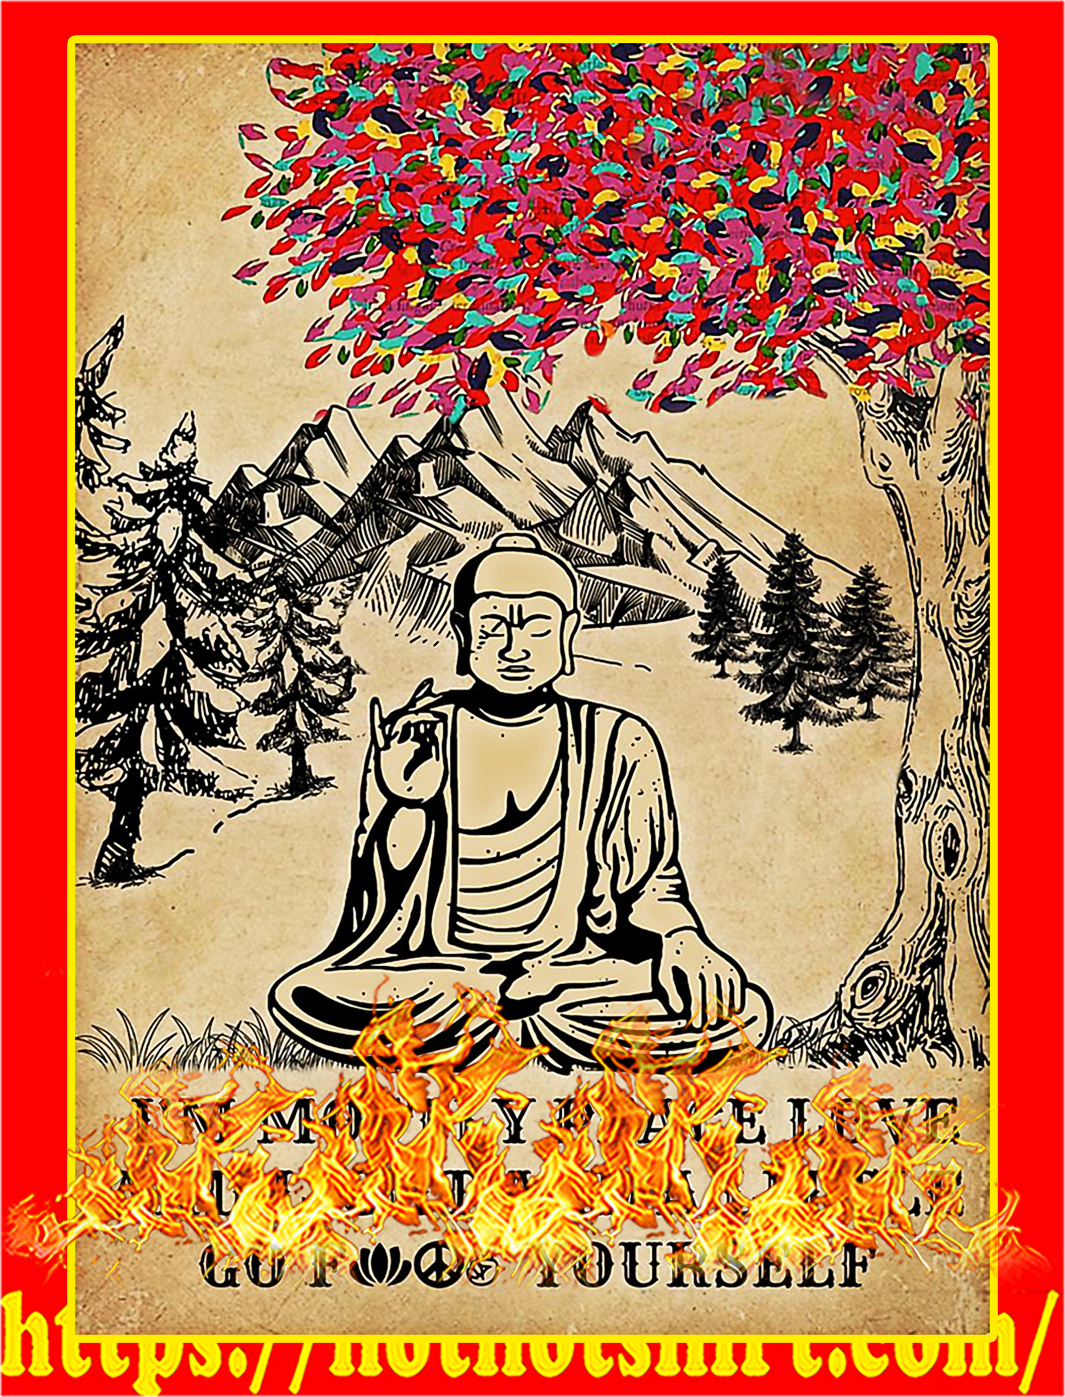 Buddha I'm mostly peace love and light poster - A3